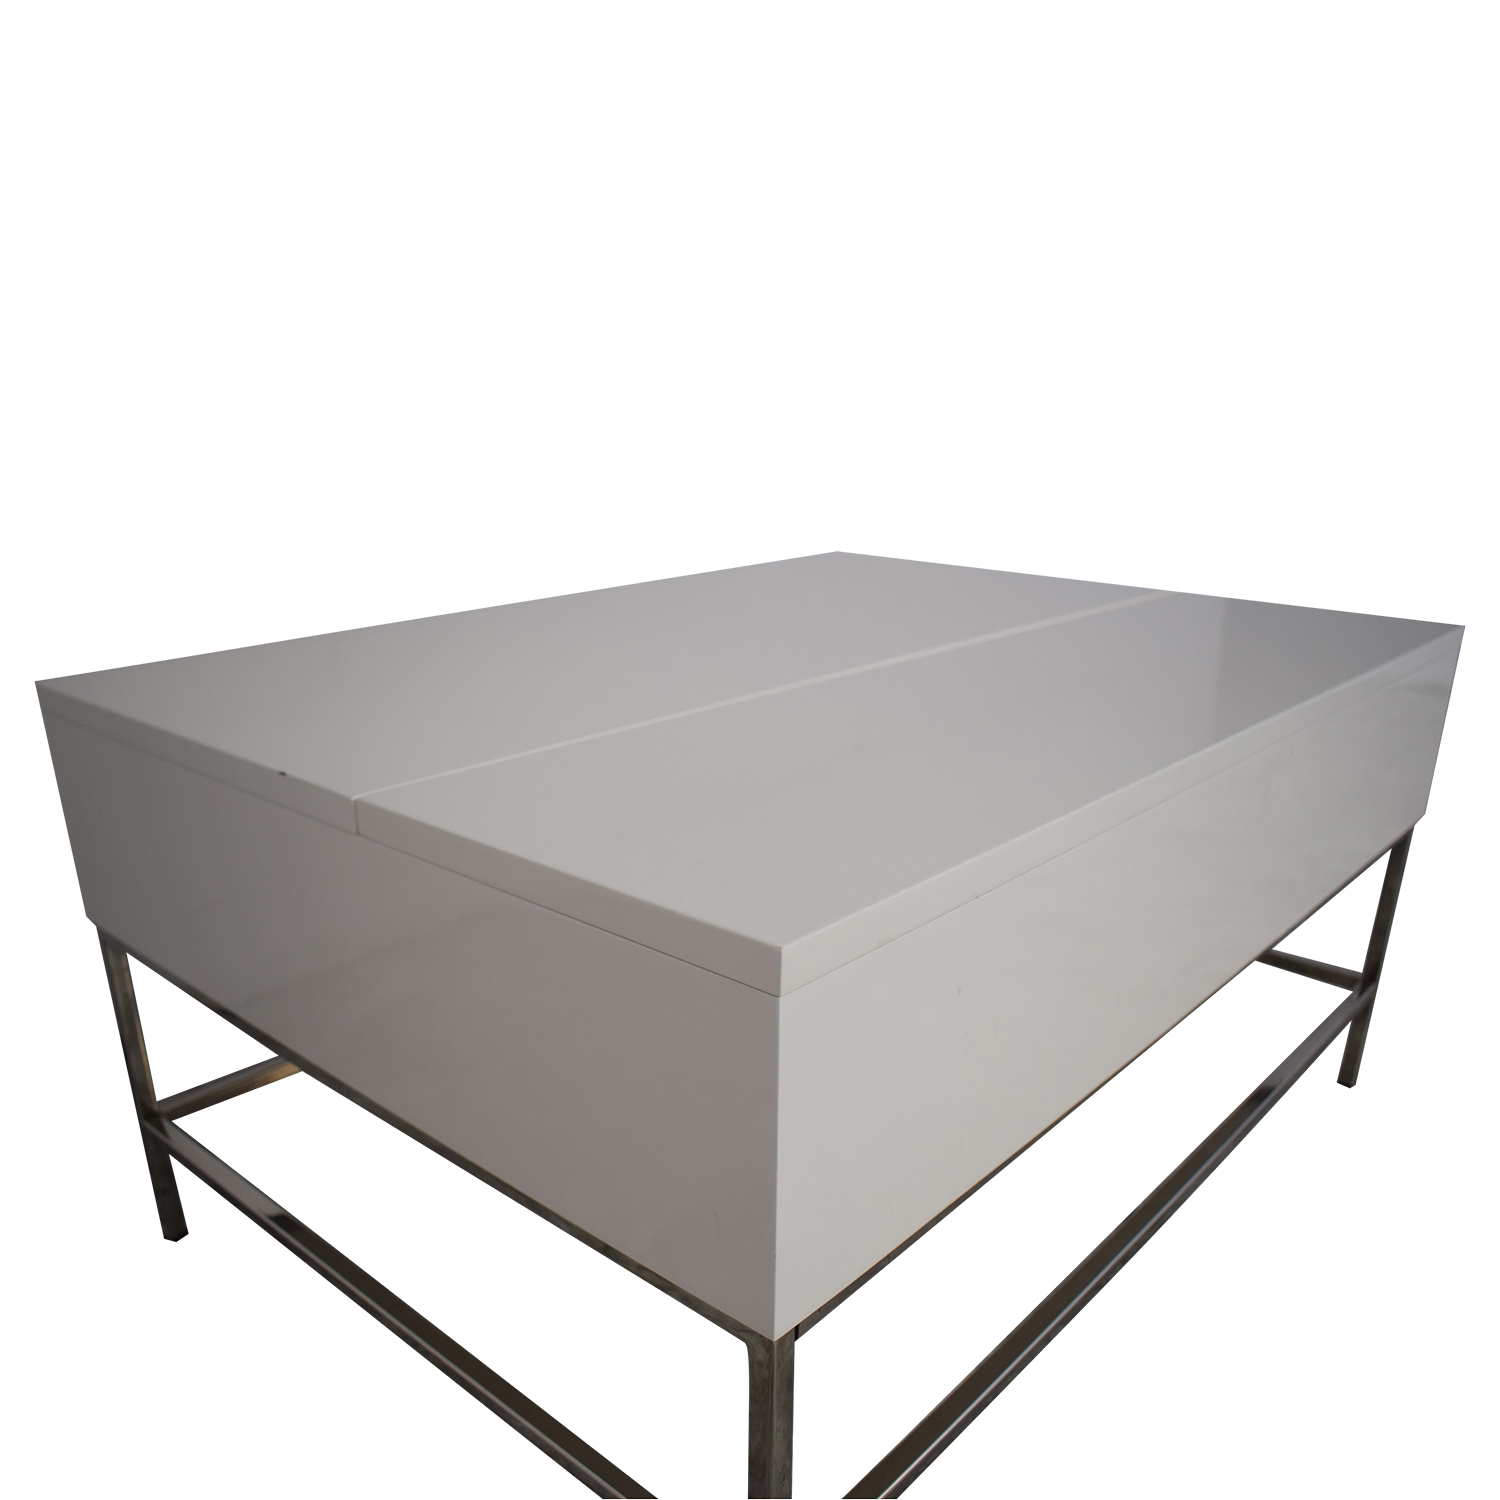 West Elm West Elm Lacquer Storage Coffee Table white